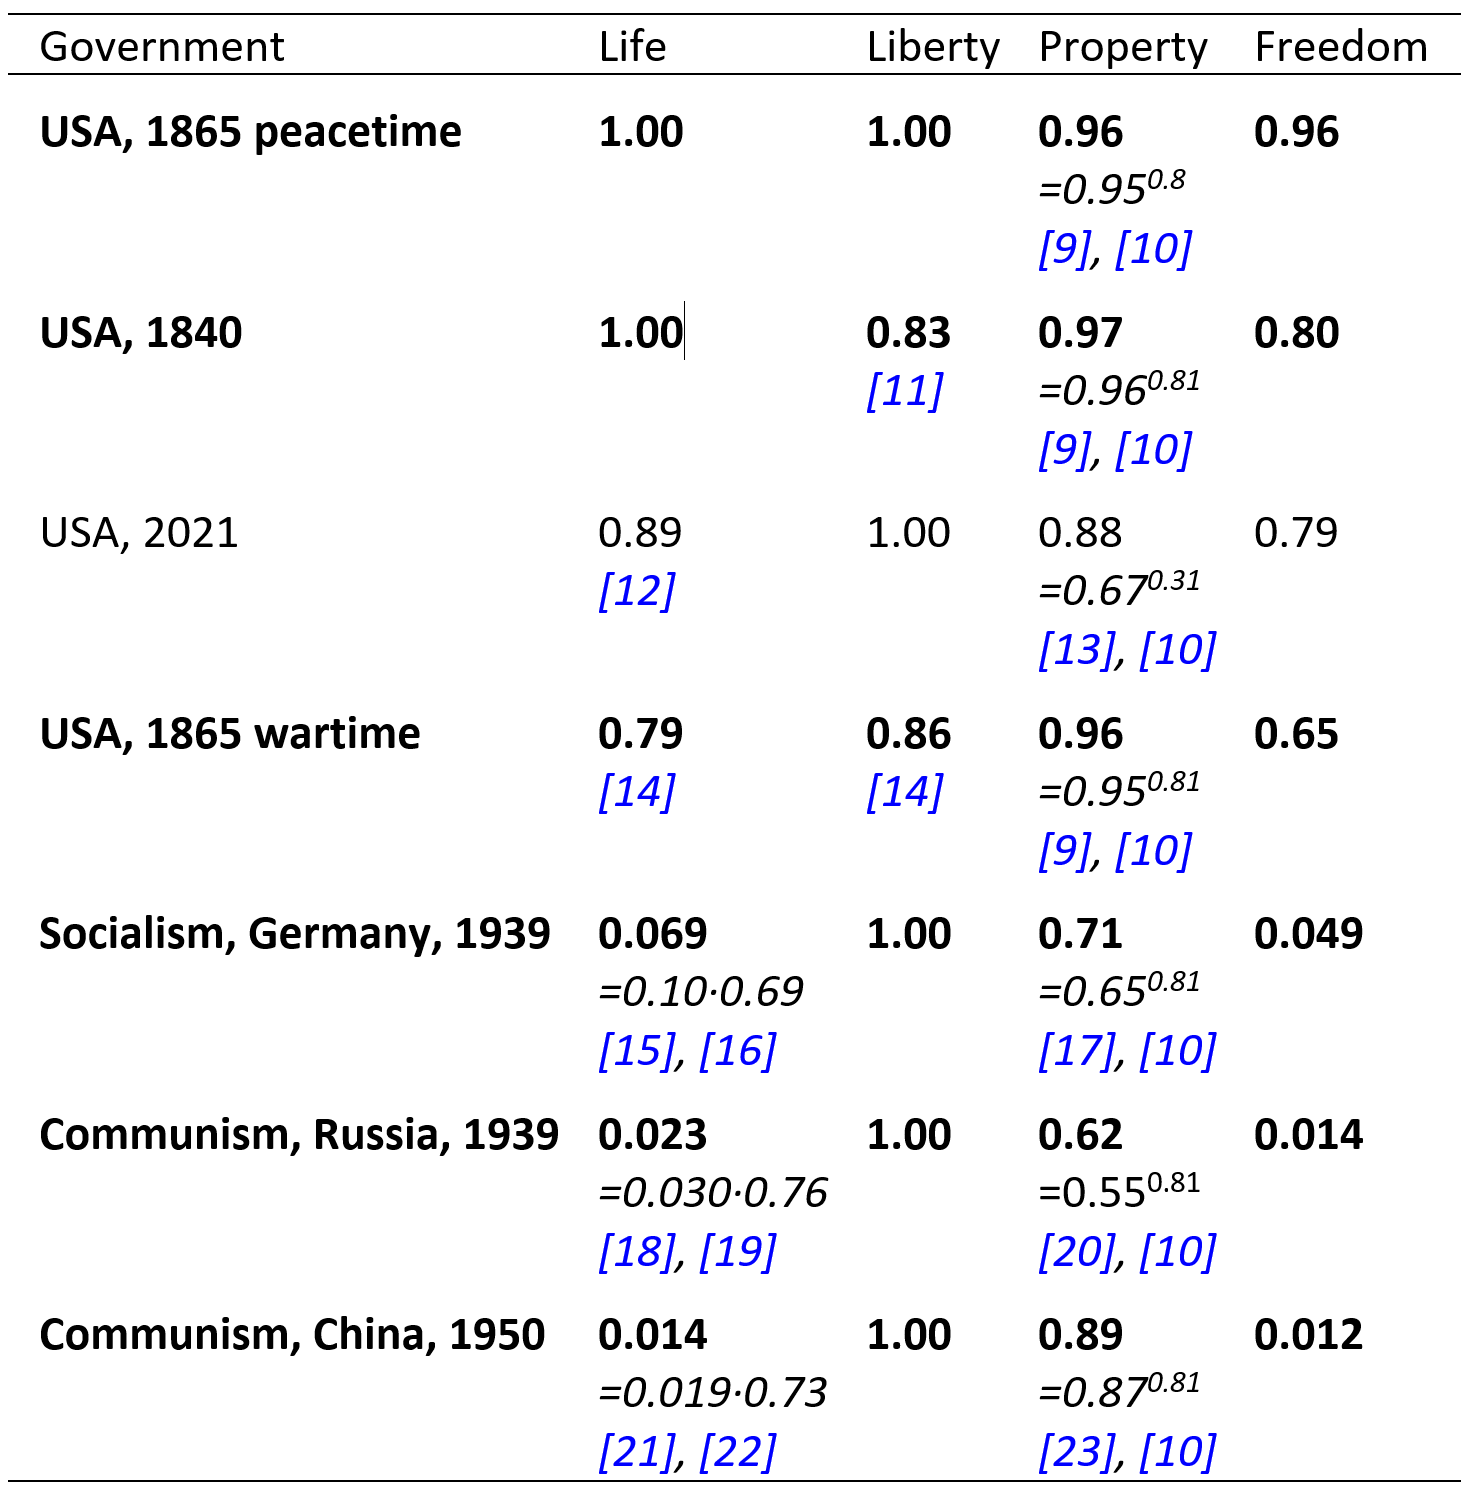 Table 1. Life, liberty, and property rights are secured far better by USA governments than by pure-socialist governments.